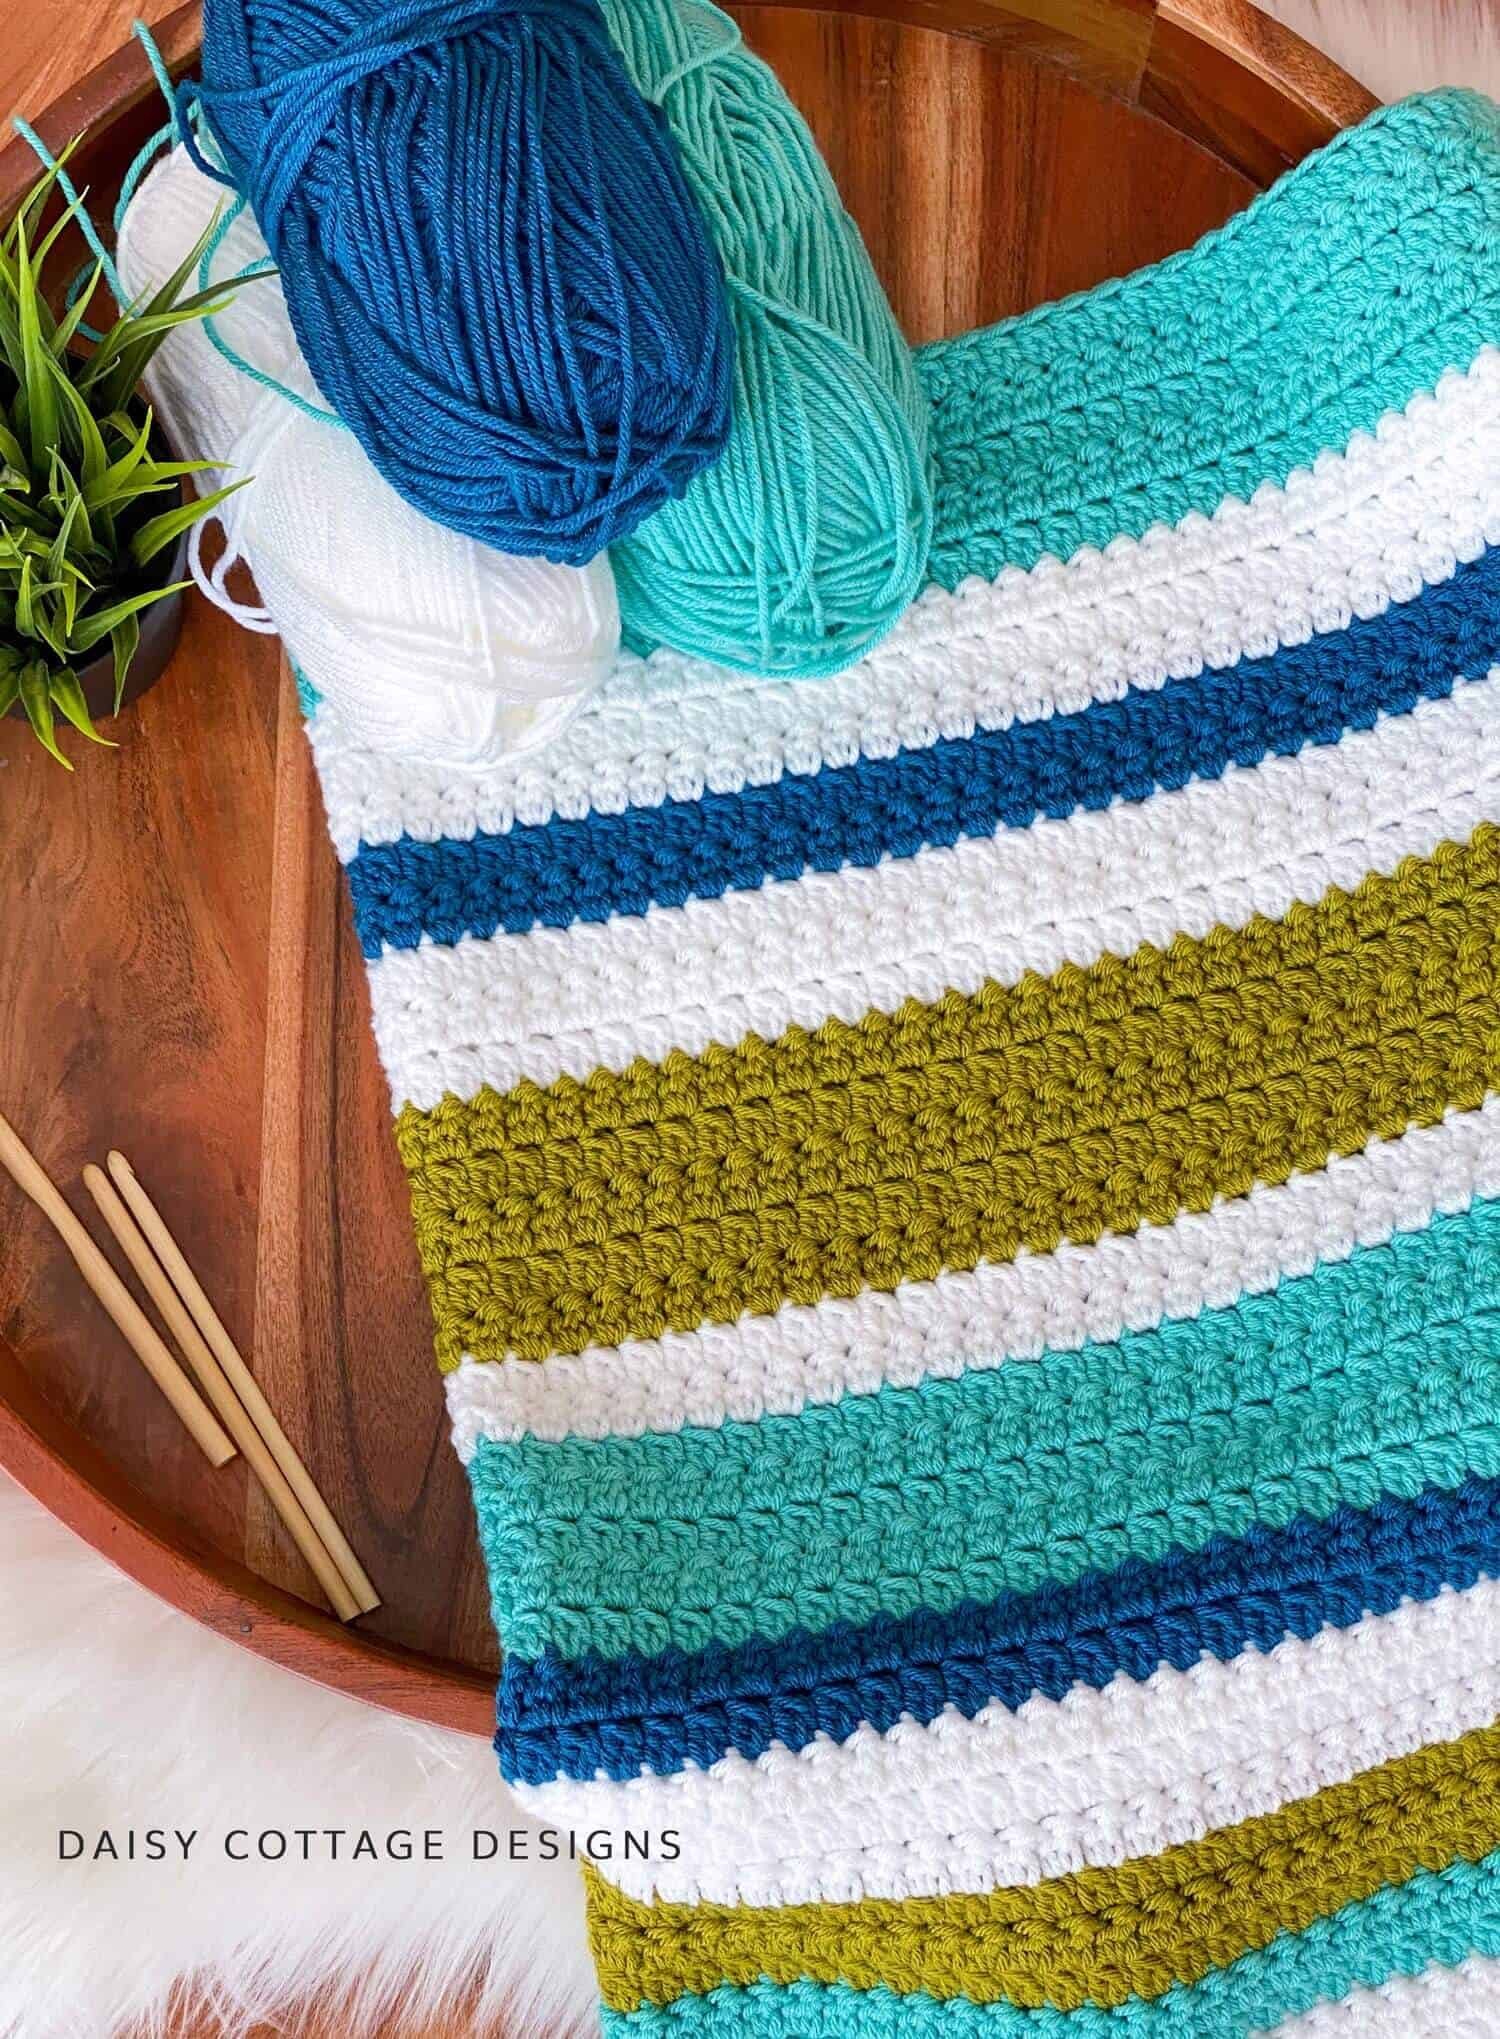 The Oceanside Throw Crochet Pattern - a textured crochet stitch blanket - is one you're going to love making! It's a free pattern on the Daisy Cottage Designs blog.